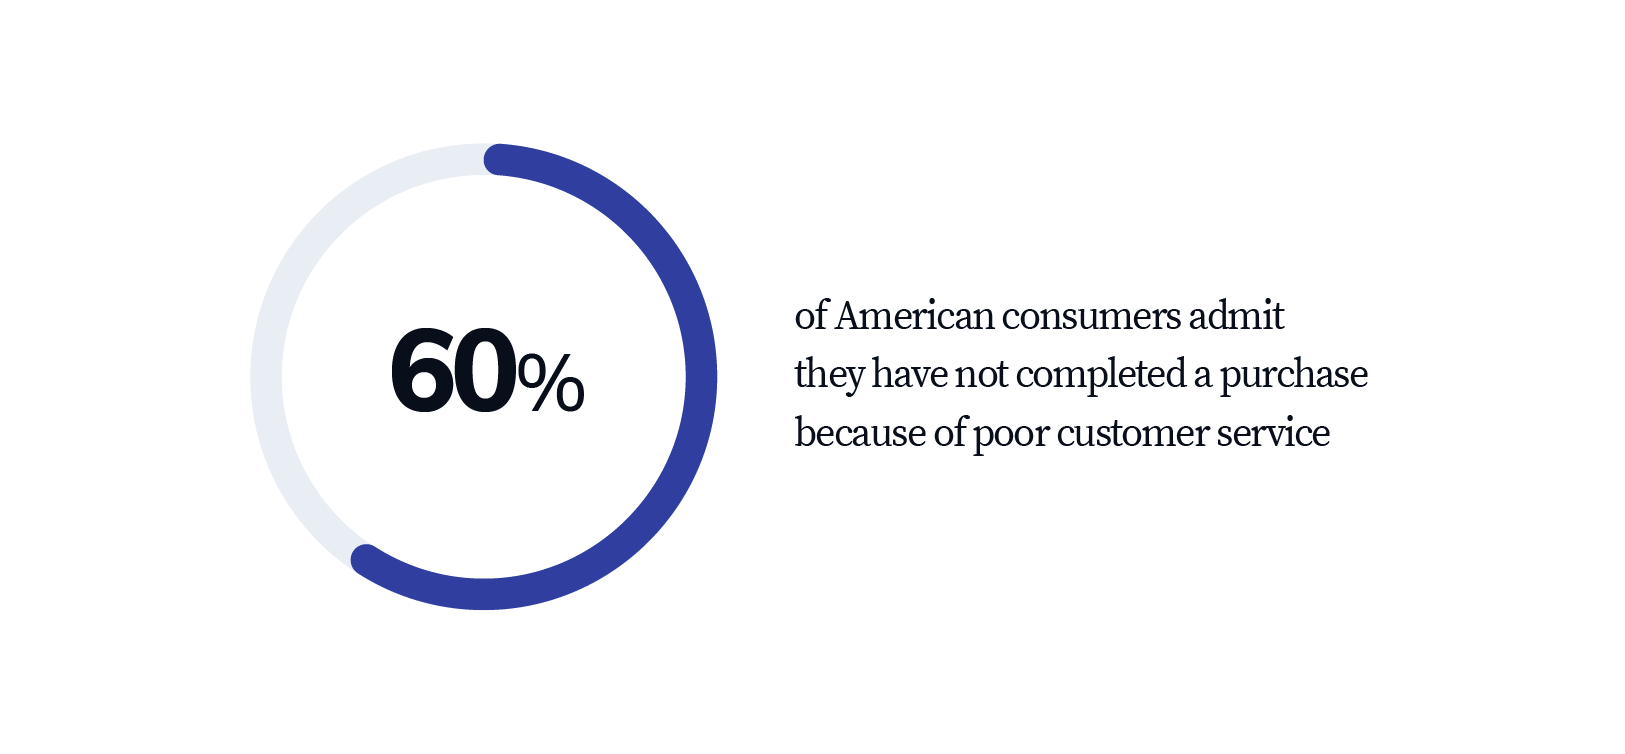 60% of American consumers admit they have not completed a purchase because of poor customer service